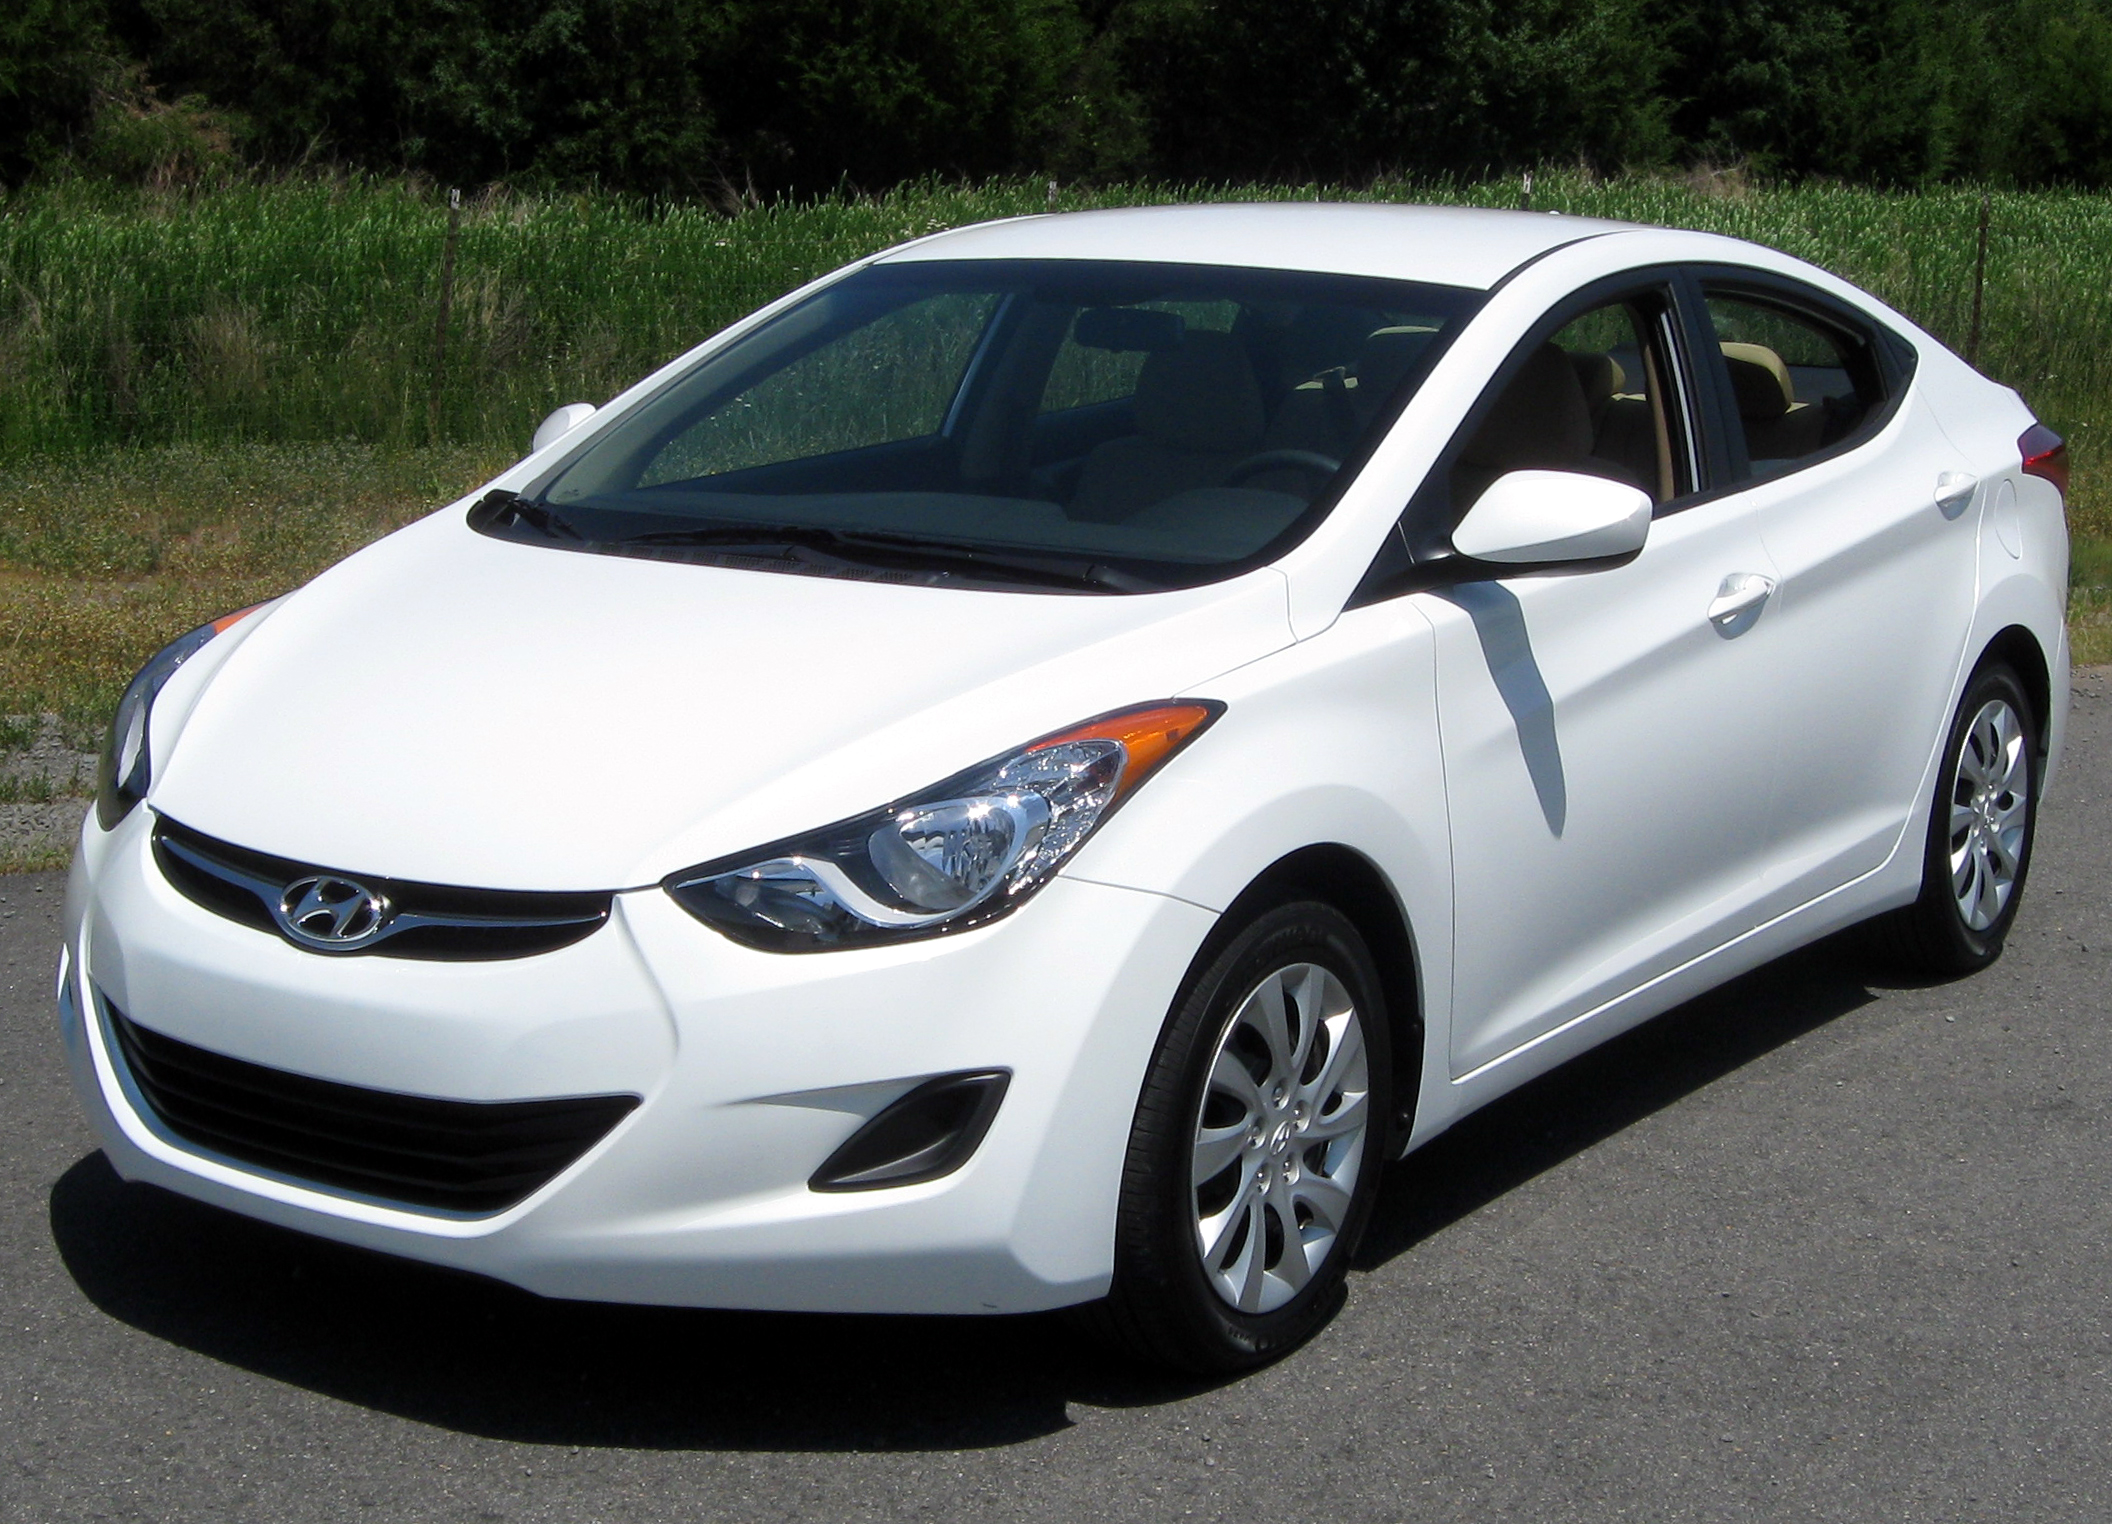 2018 Hyundai Accent Preview >> File:2011 Hyundai Elantra GLS -- 06-02-2011 2.jpg - Wikimedia Commons